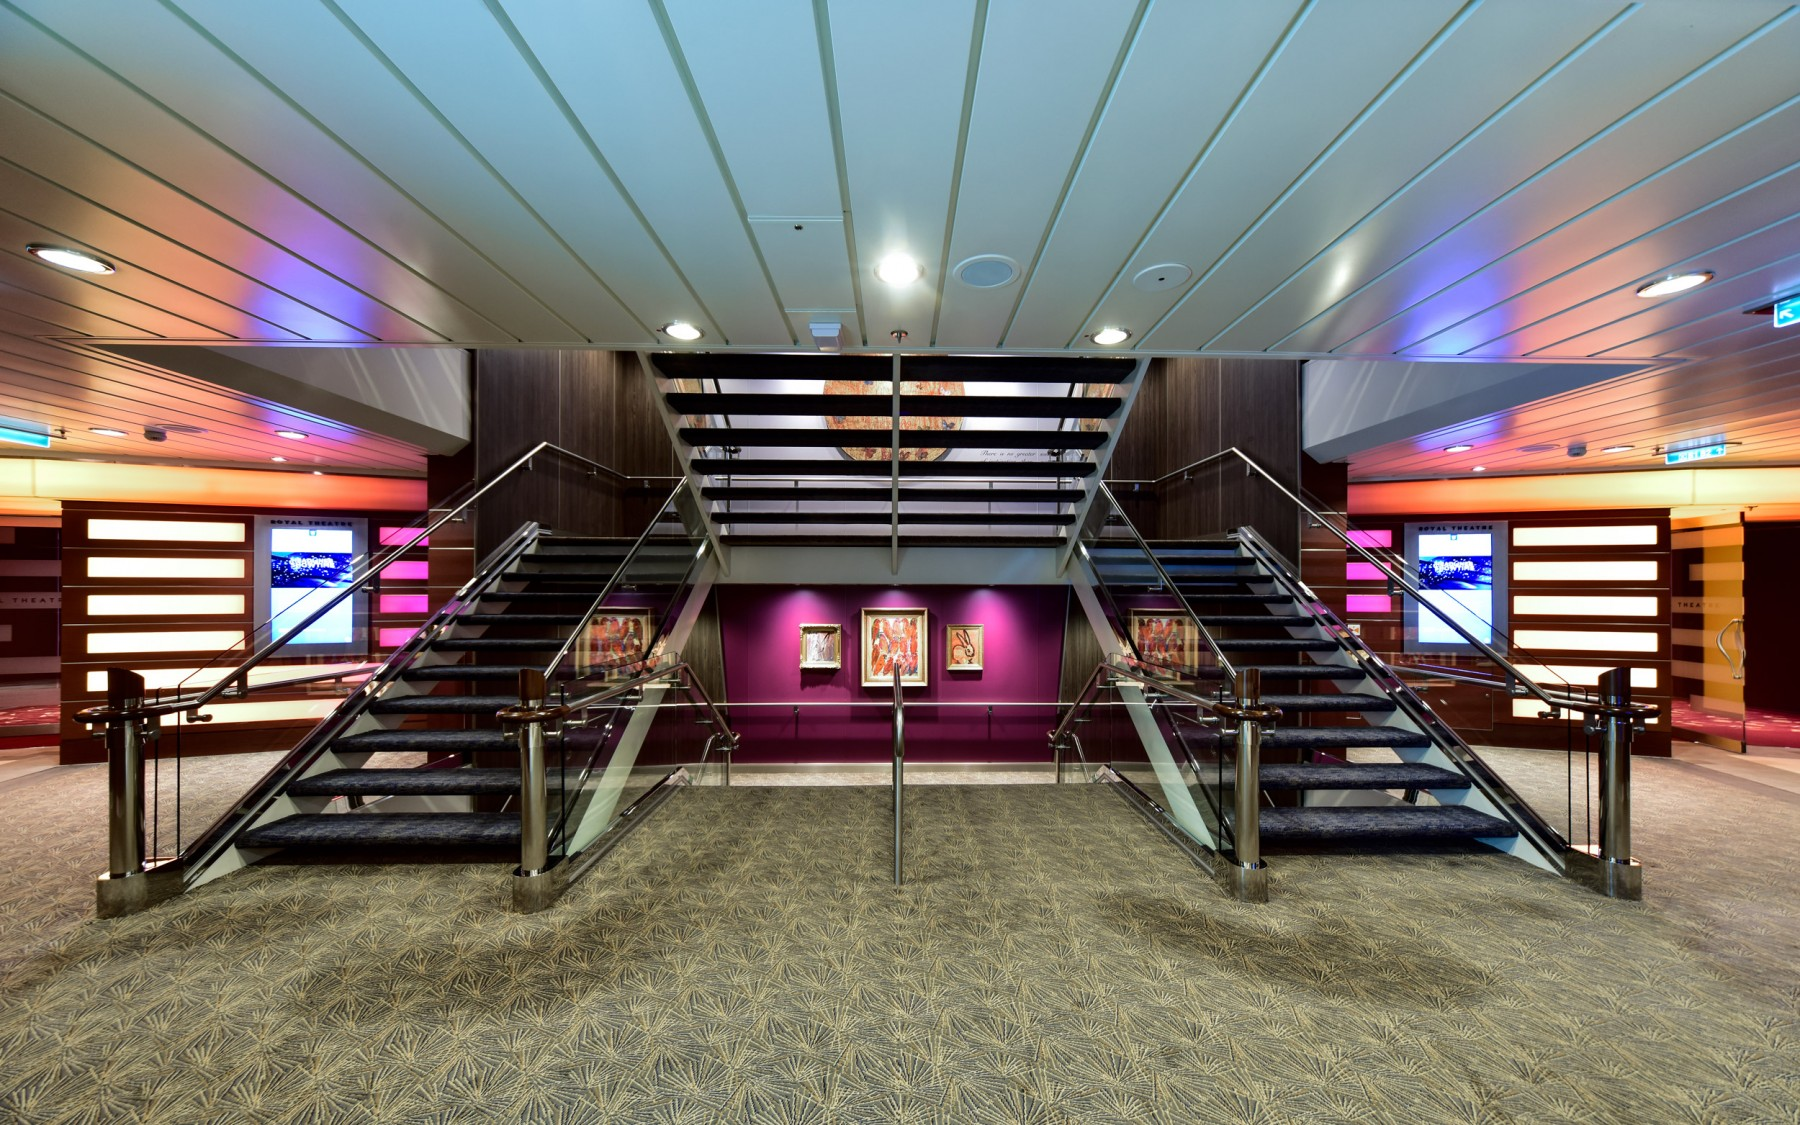 100 Best Corridors Stairs Lighting Images By John: Royal Carribean Cruise Line